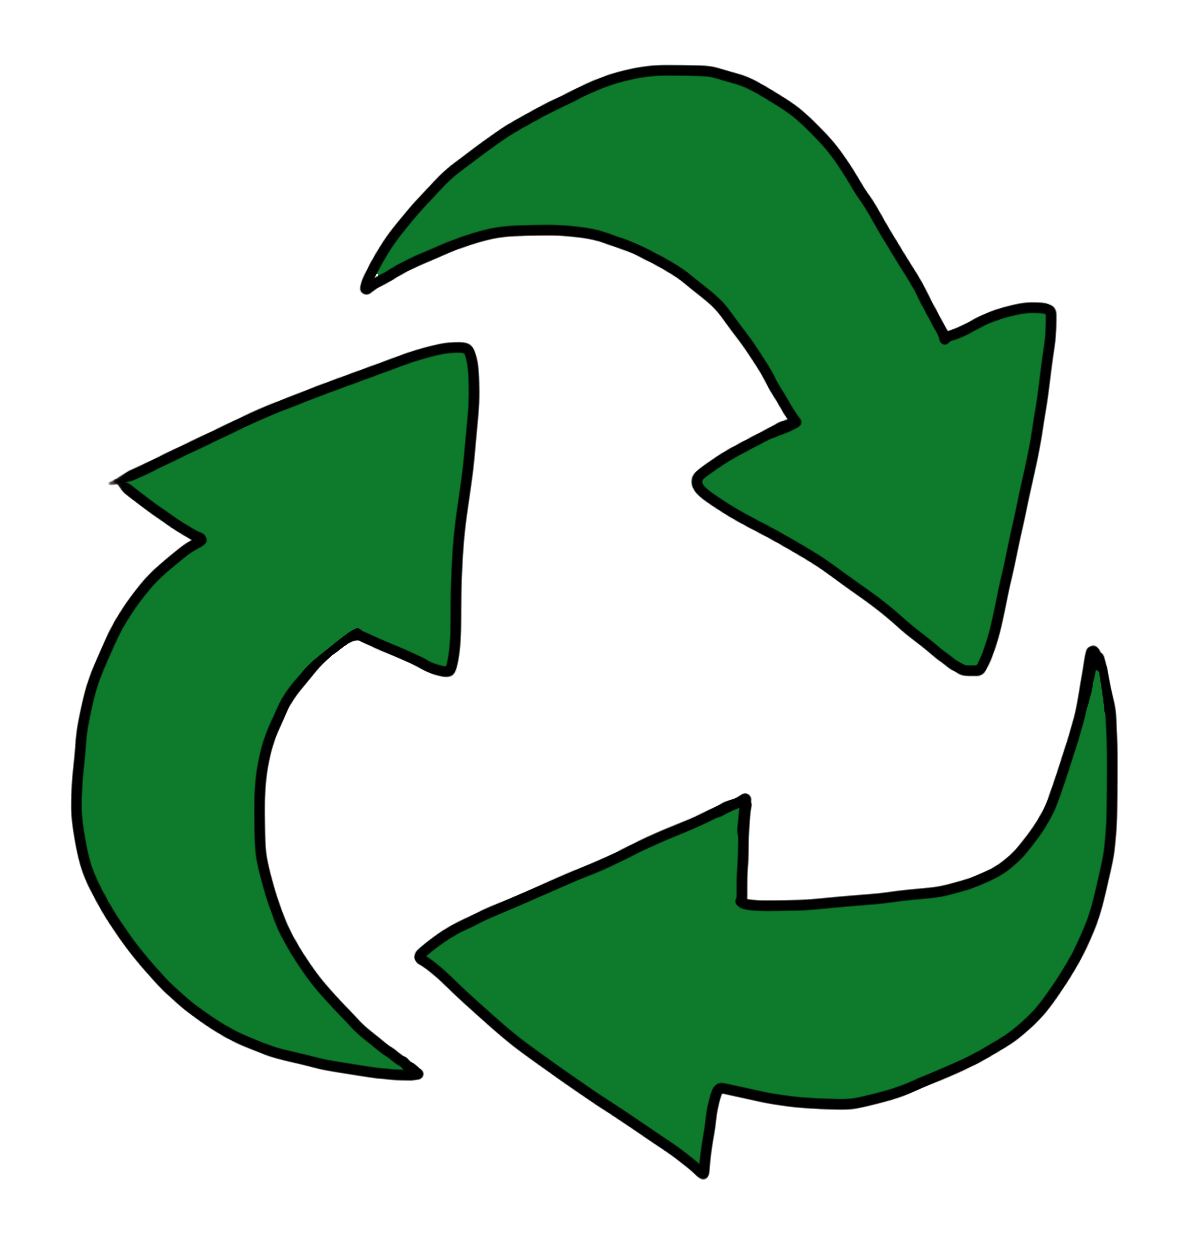 Free Animated Recycling Clipart, Download Free Clip Art.